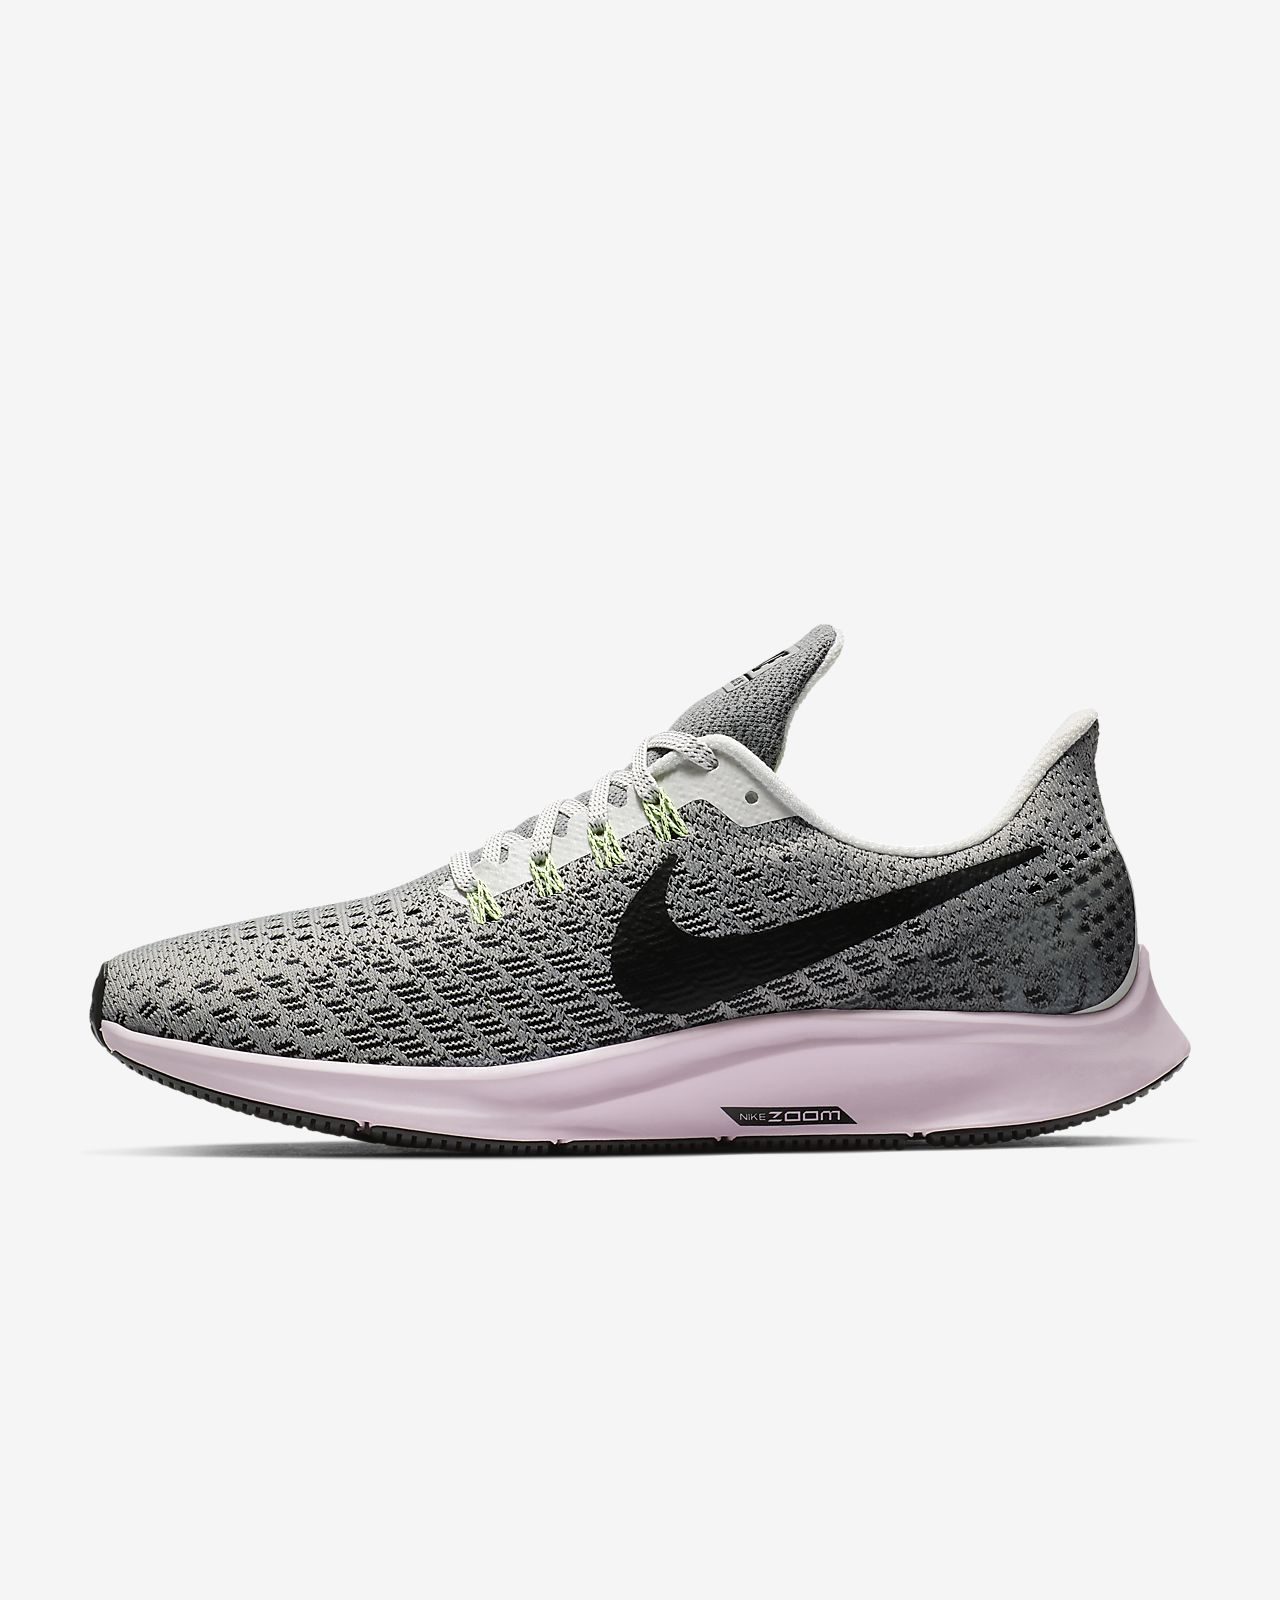 new product 12504 b0ff0 ... Chaussure de running Nike Air Zoom Pegasus 35 pour Femme